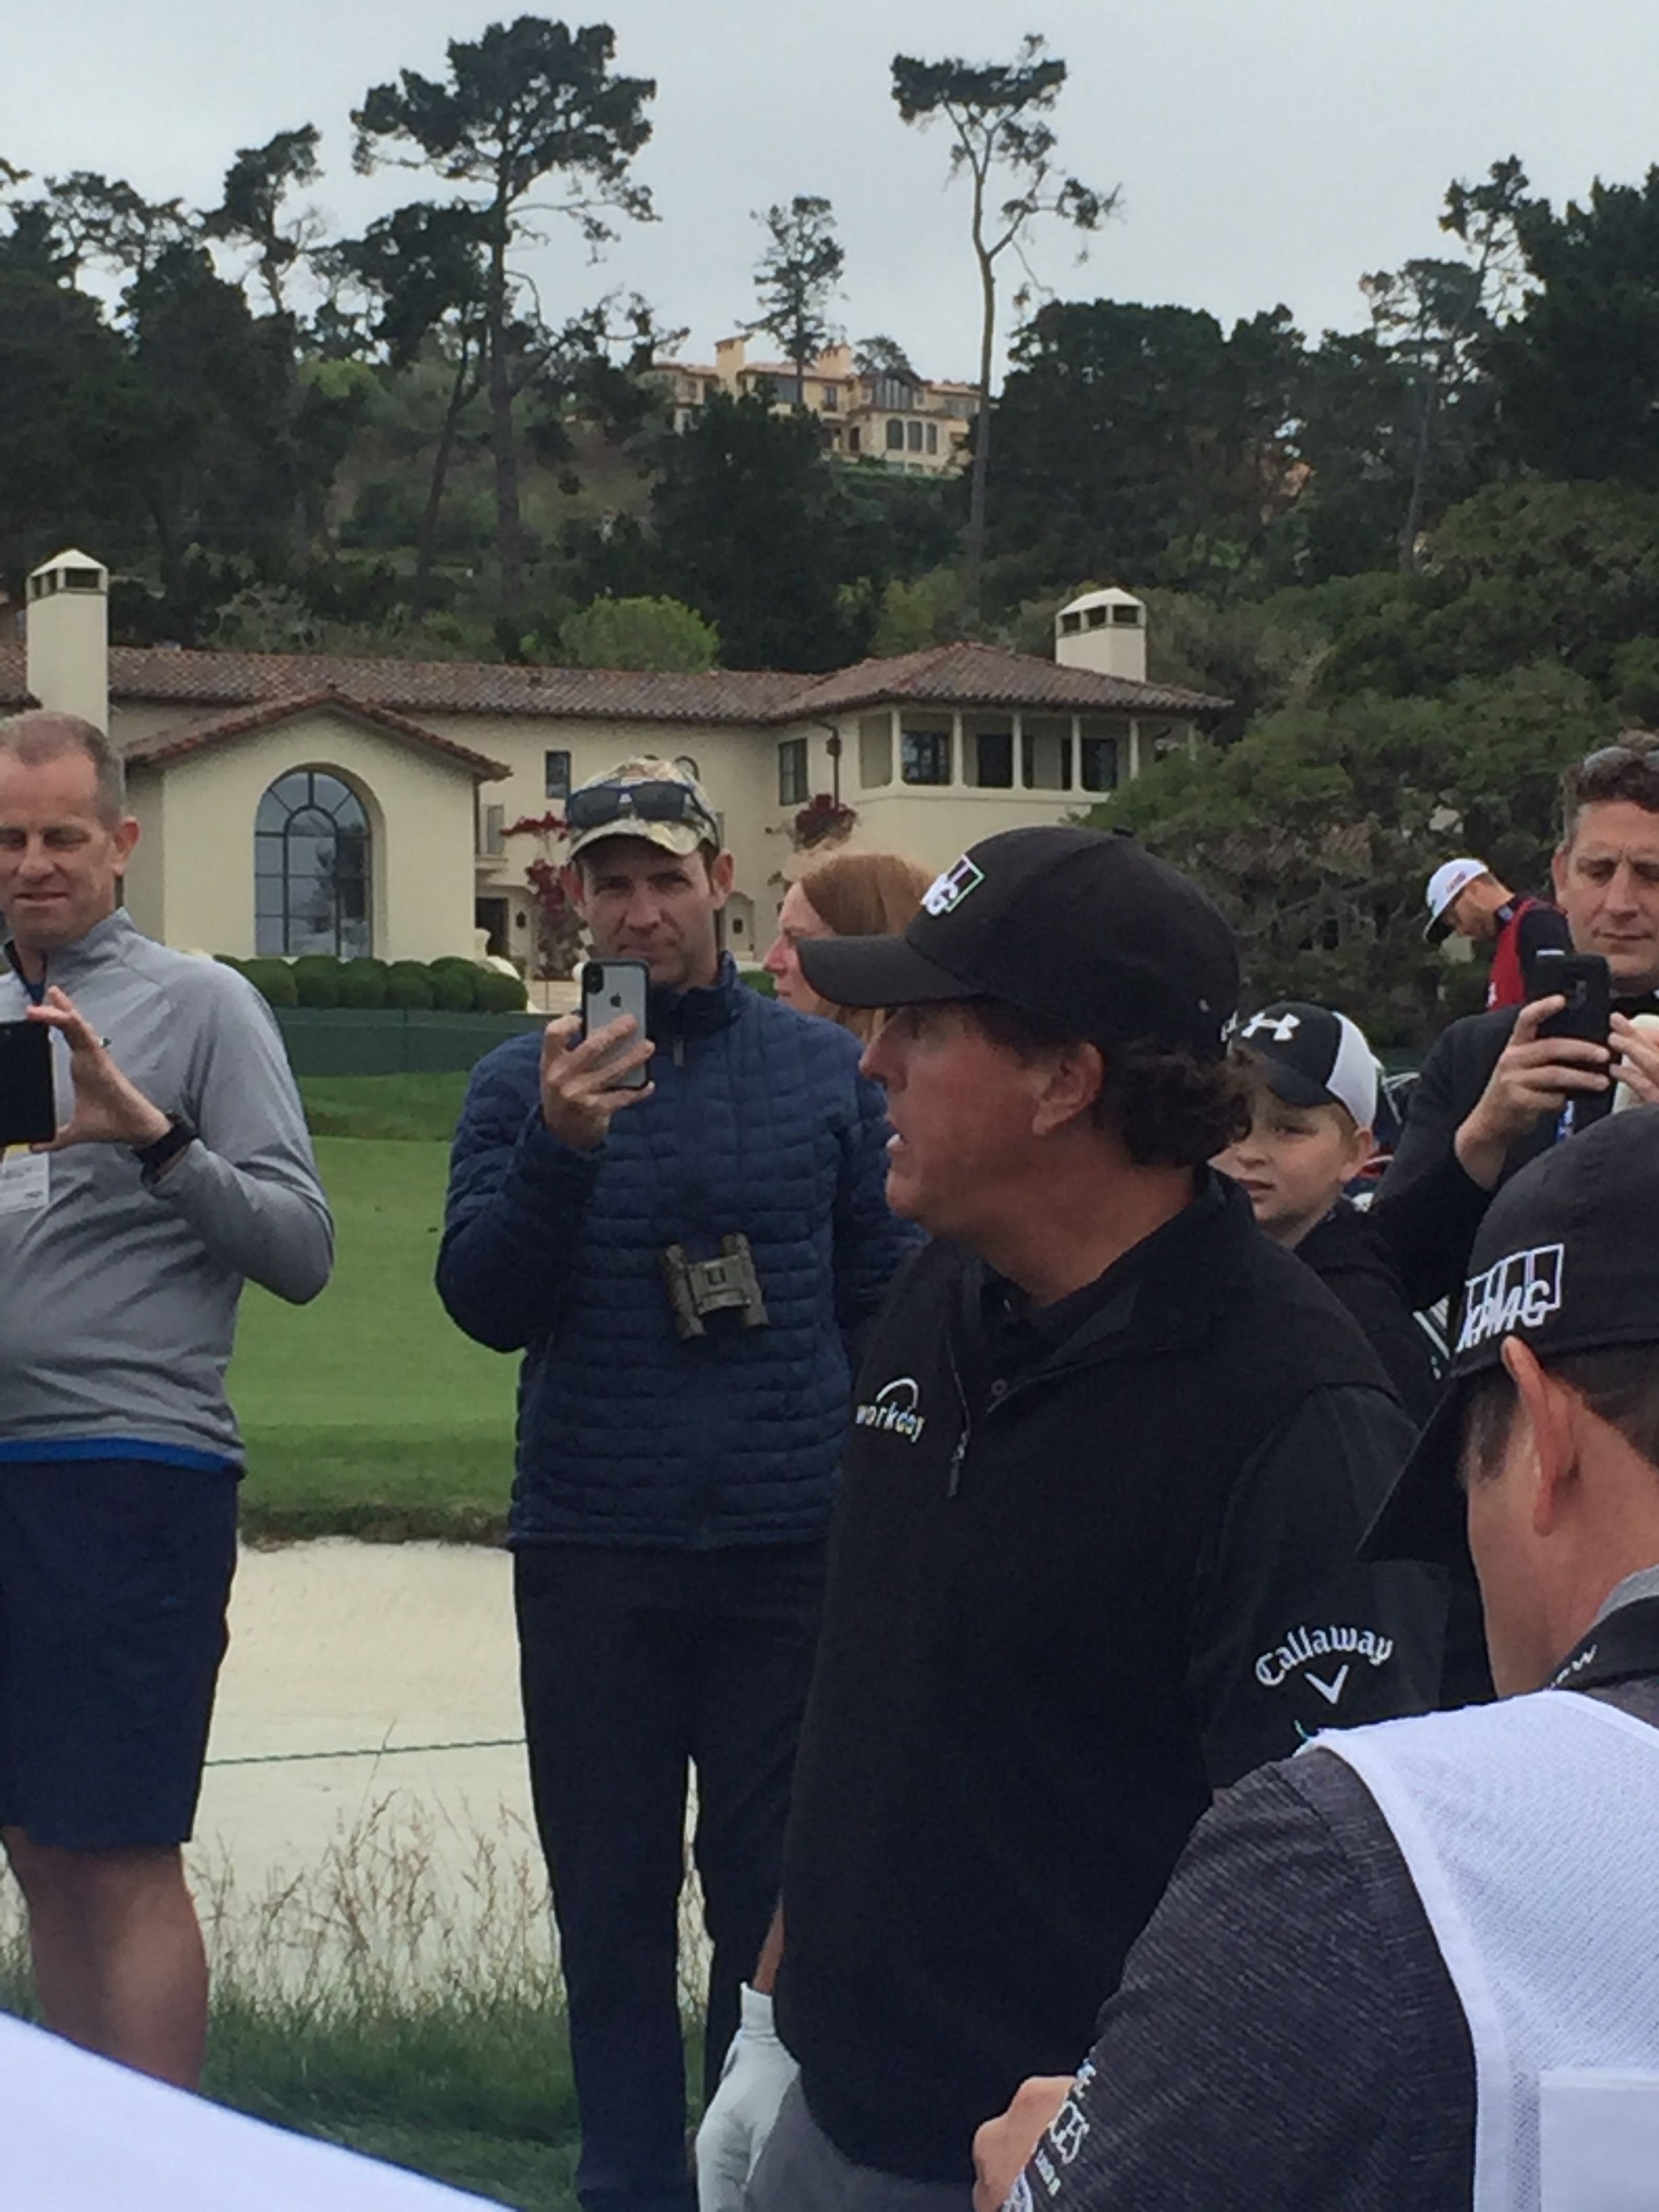 Phil Mickelson among the fans